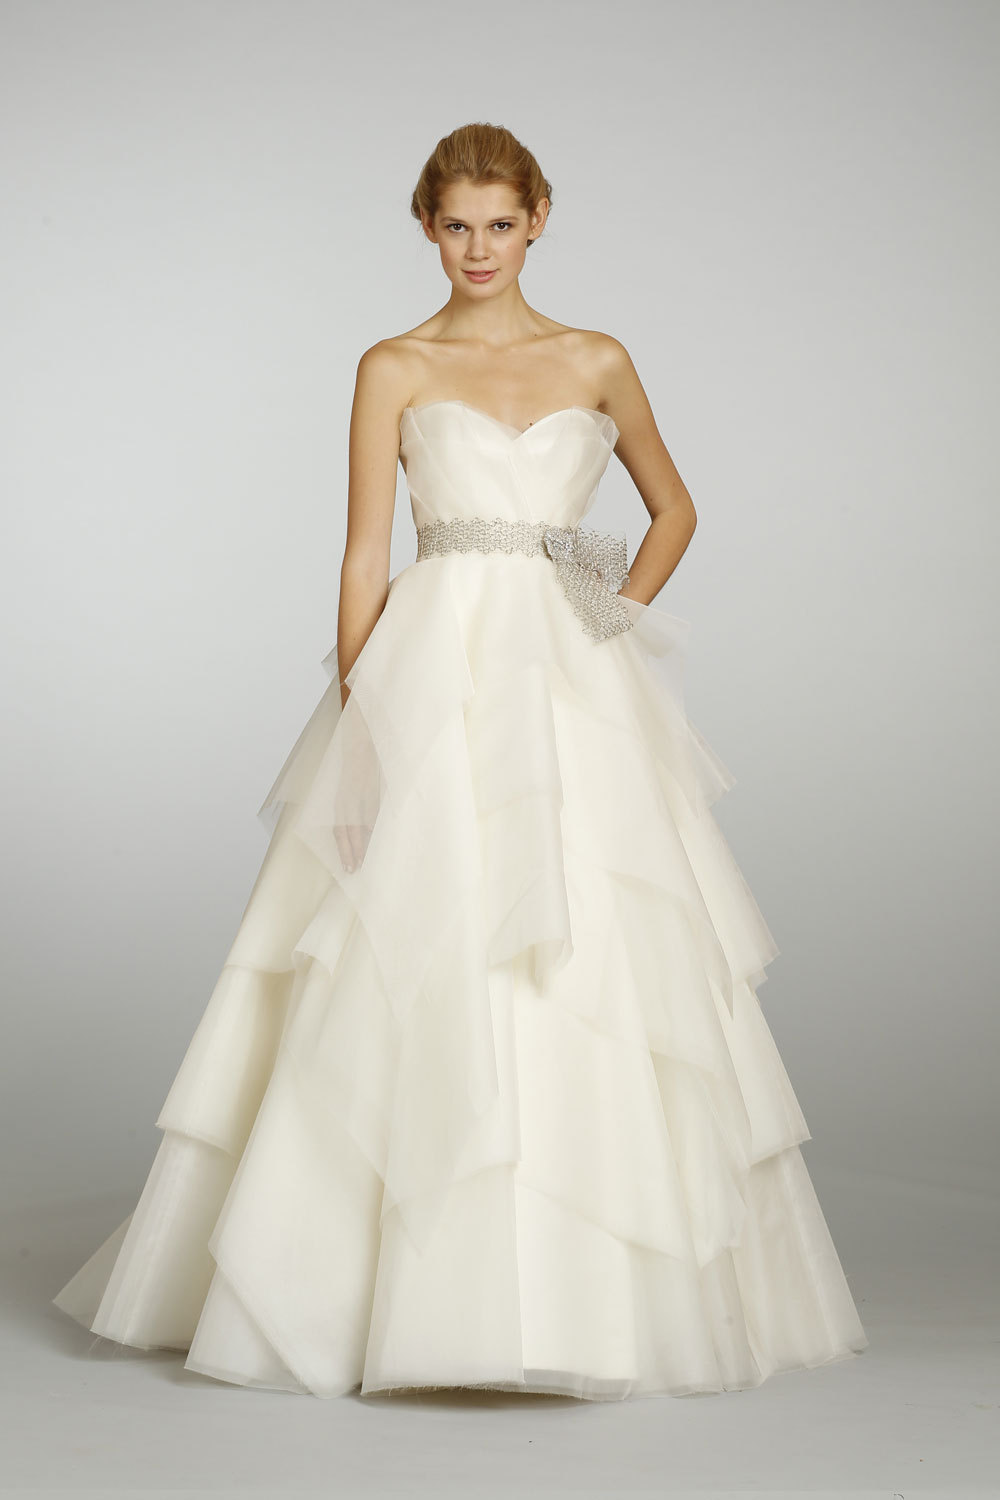 Spring-2013-wedding-dress-alvina-valenta-bridal-9306.full